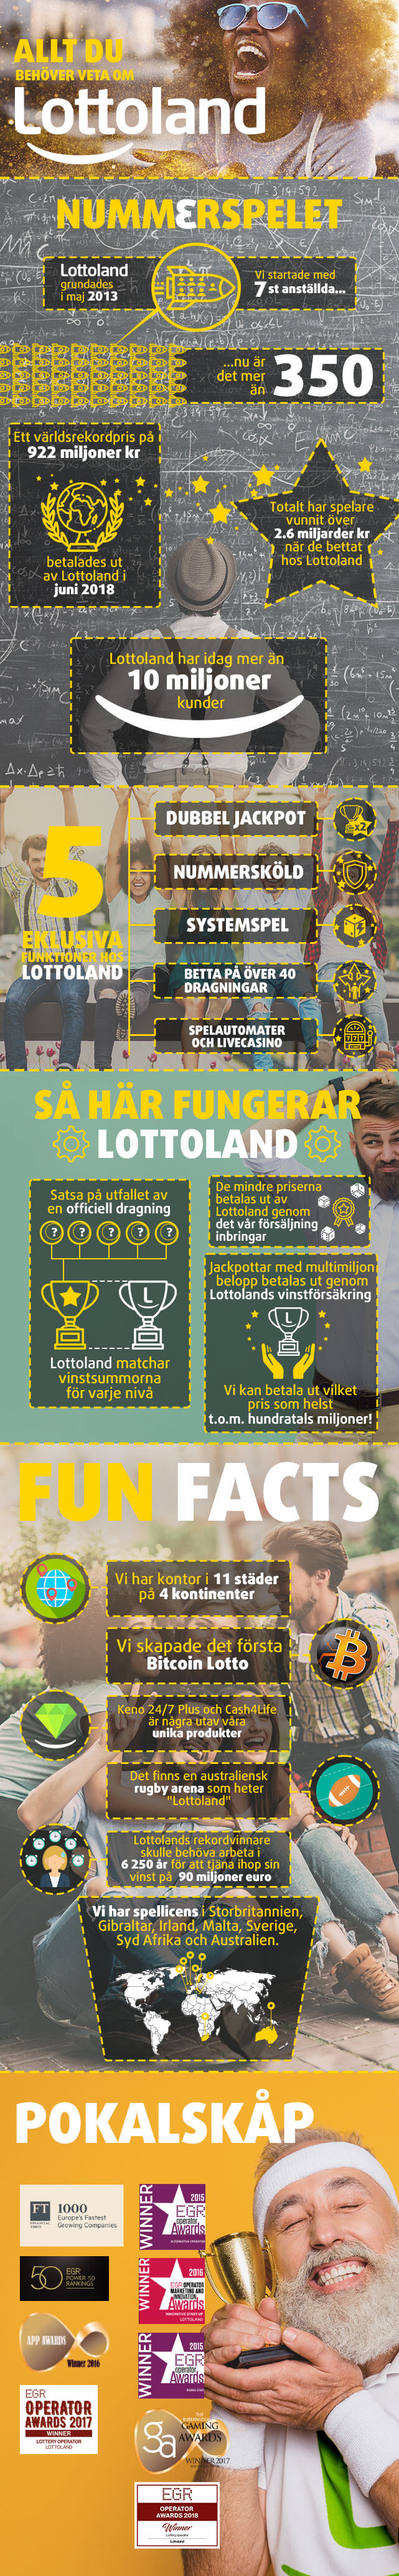 infographic om Lottoland